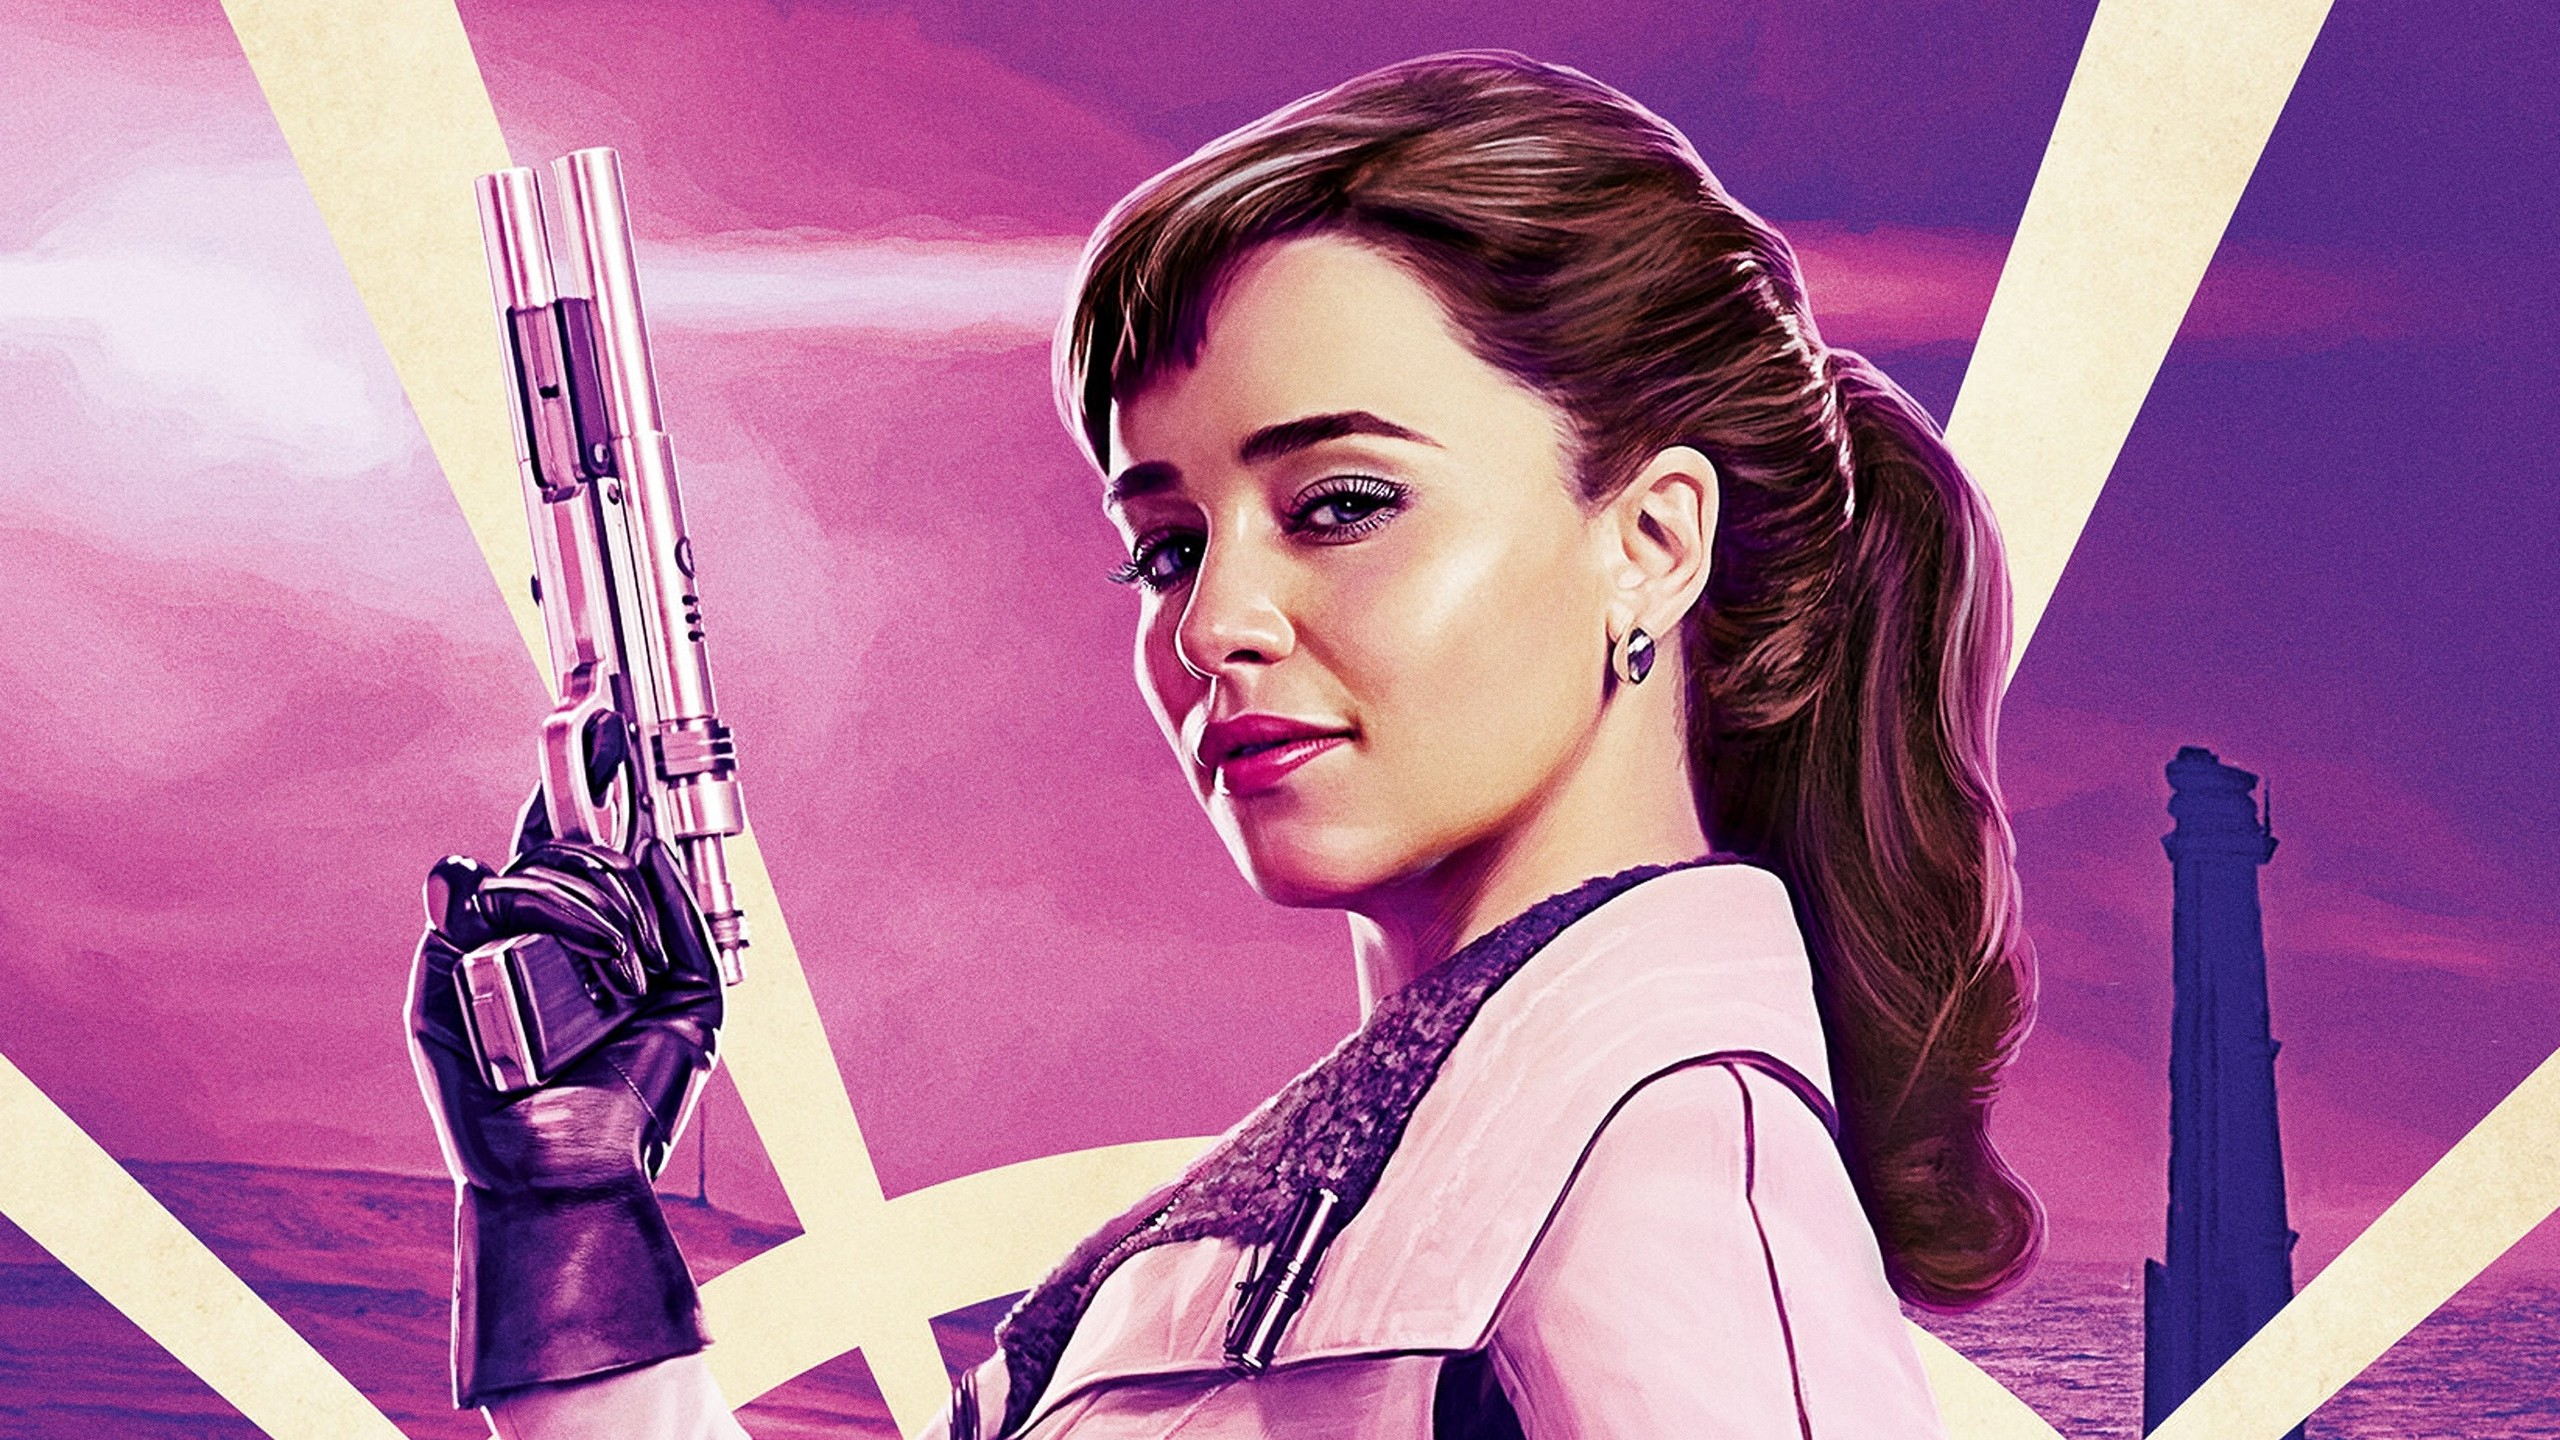 Superman 3d Wallpaper For Android Emilia Clarke As Qi Ra In Solo A Star Wars Story